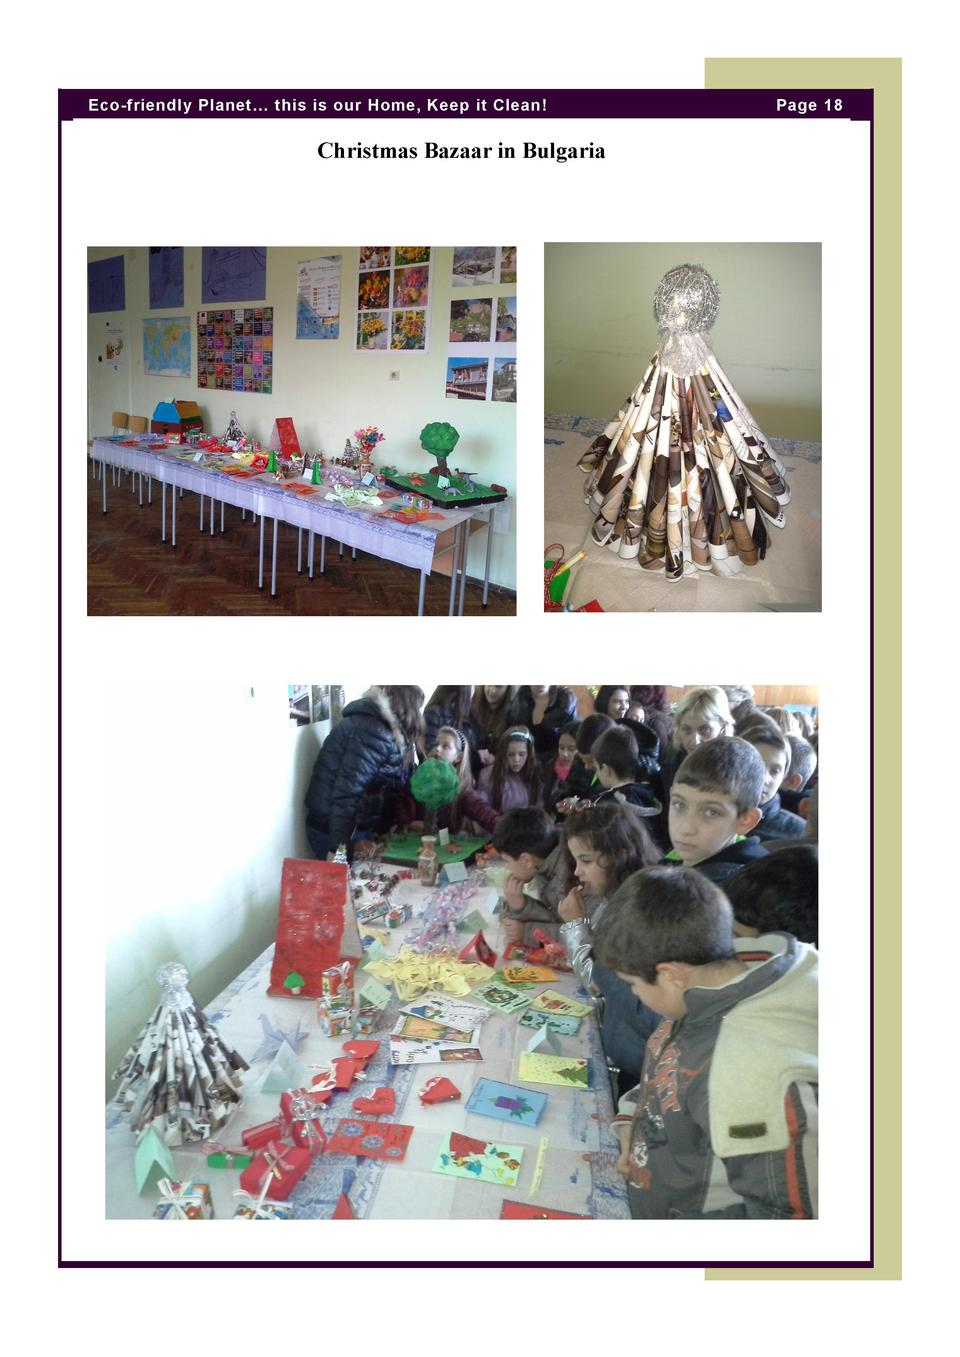 Eco-friendly Planet    this is our Home, Keep it Clean   Christmas Bazaar in Bulgaria  Page 18